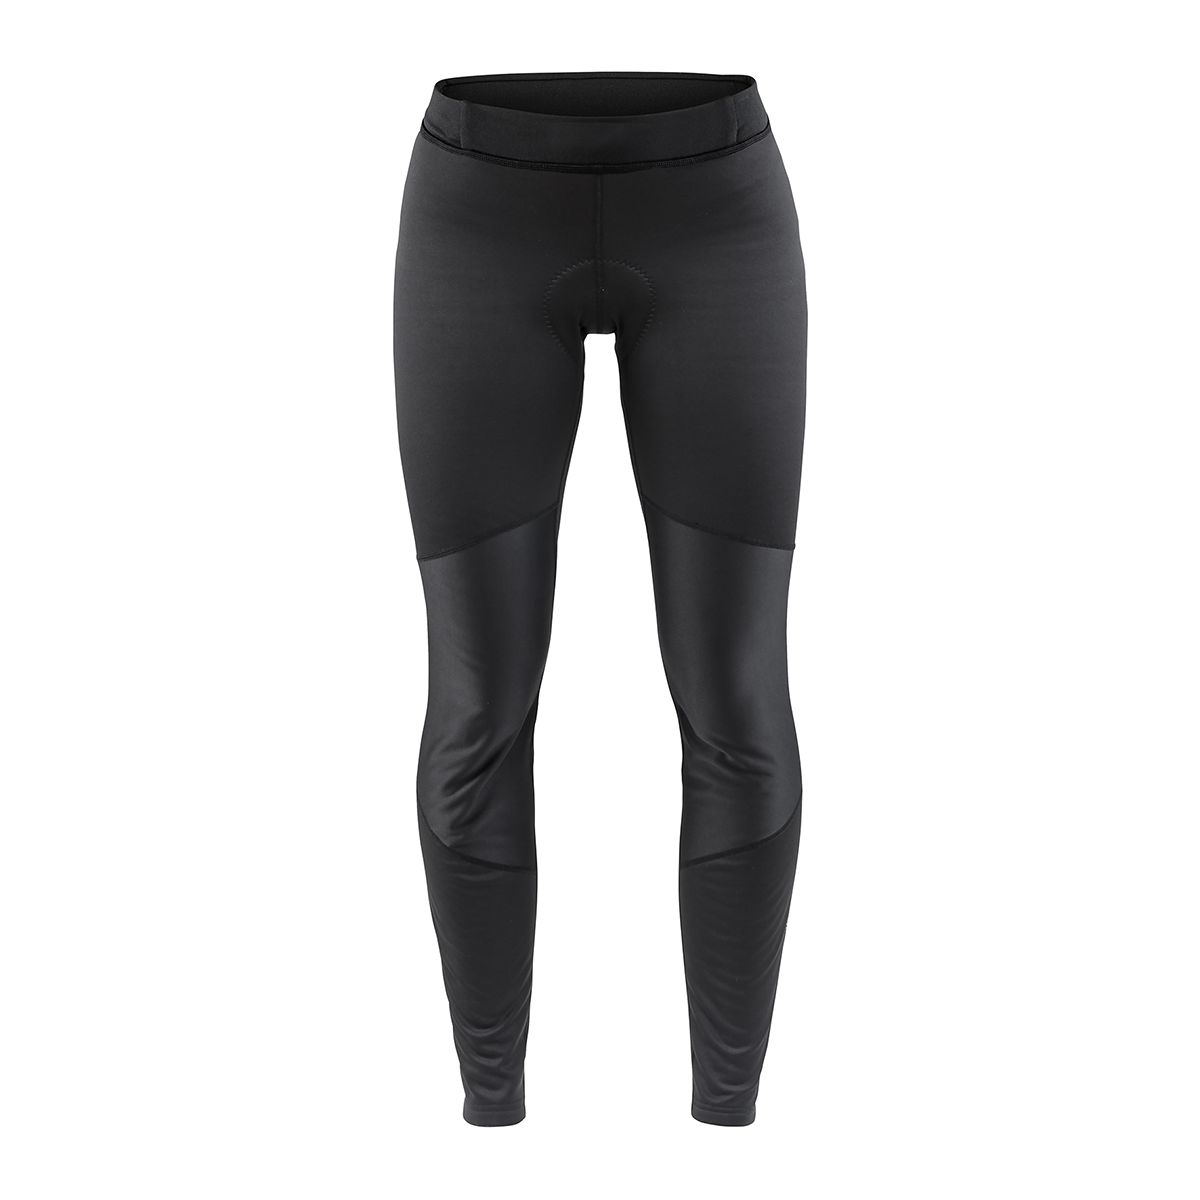 CRAFT IDEAL WIND TIGHTS W for women | Bukser